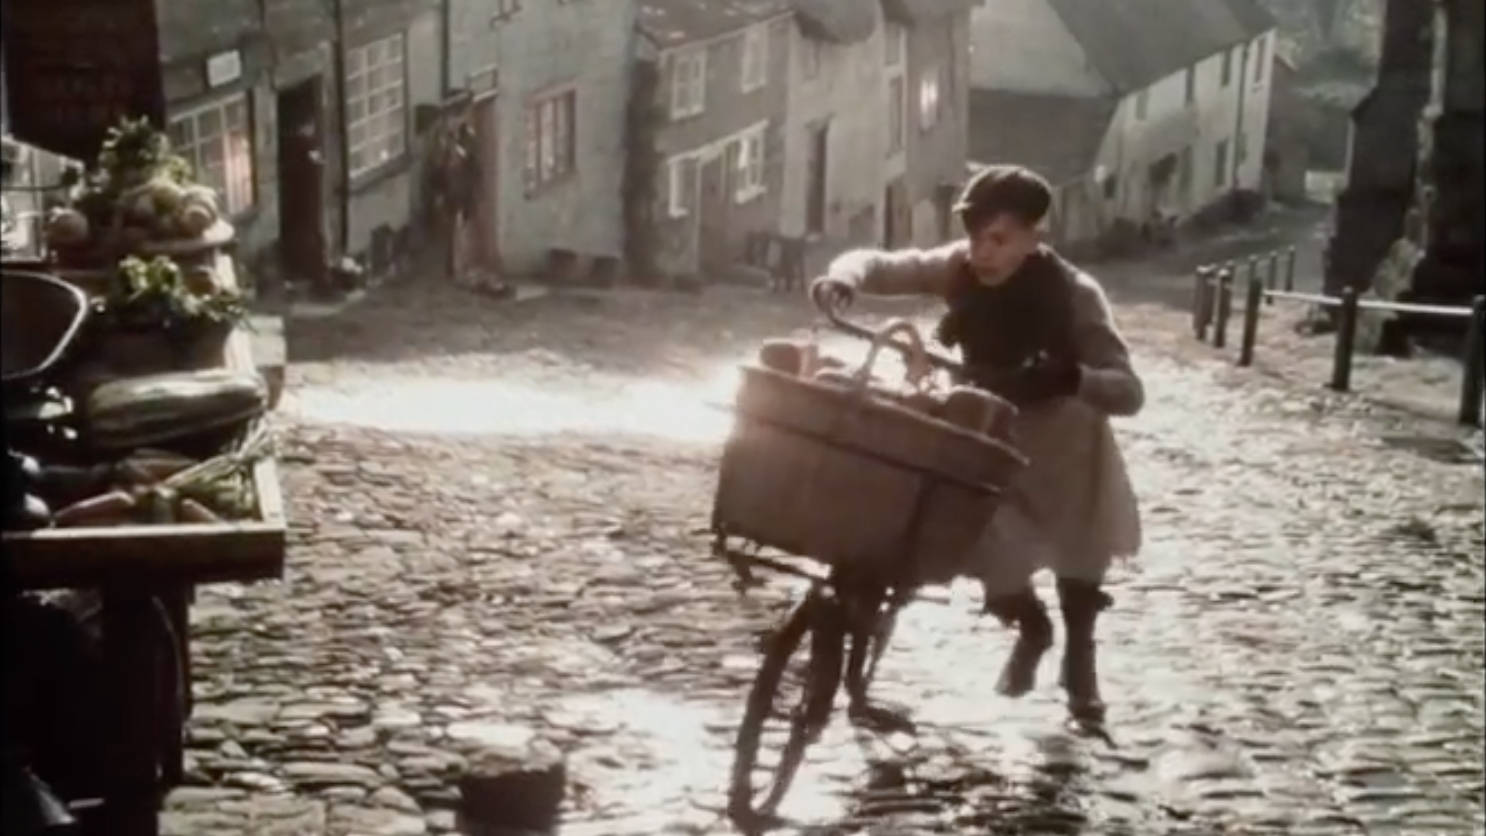 Hovis 'Boy on the Bike' advert returns to TV with new music ...